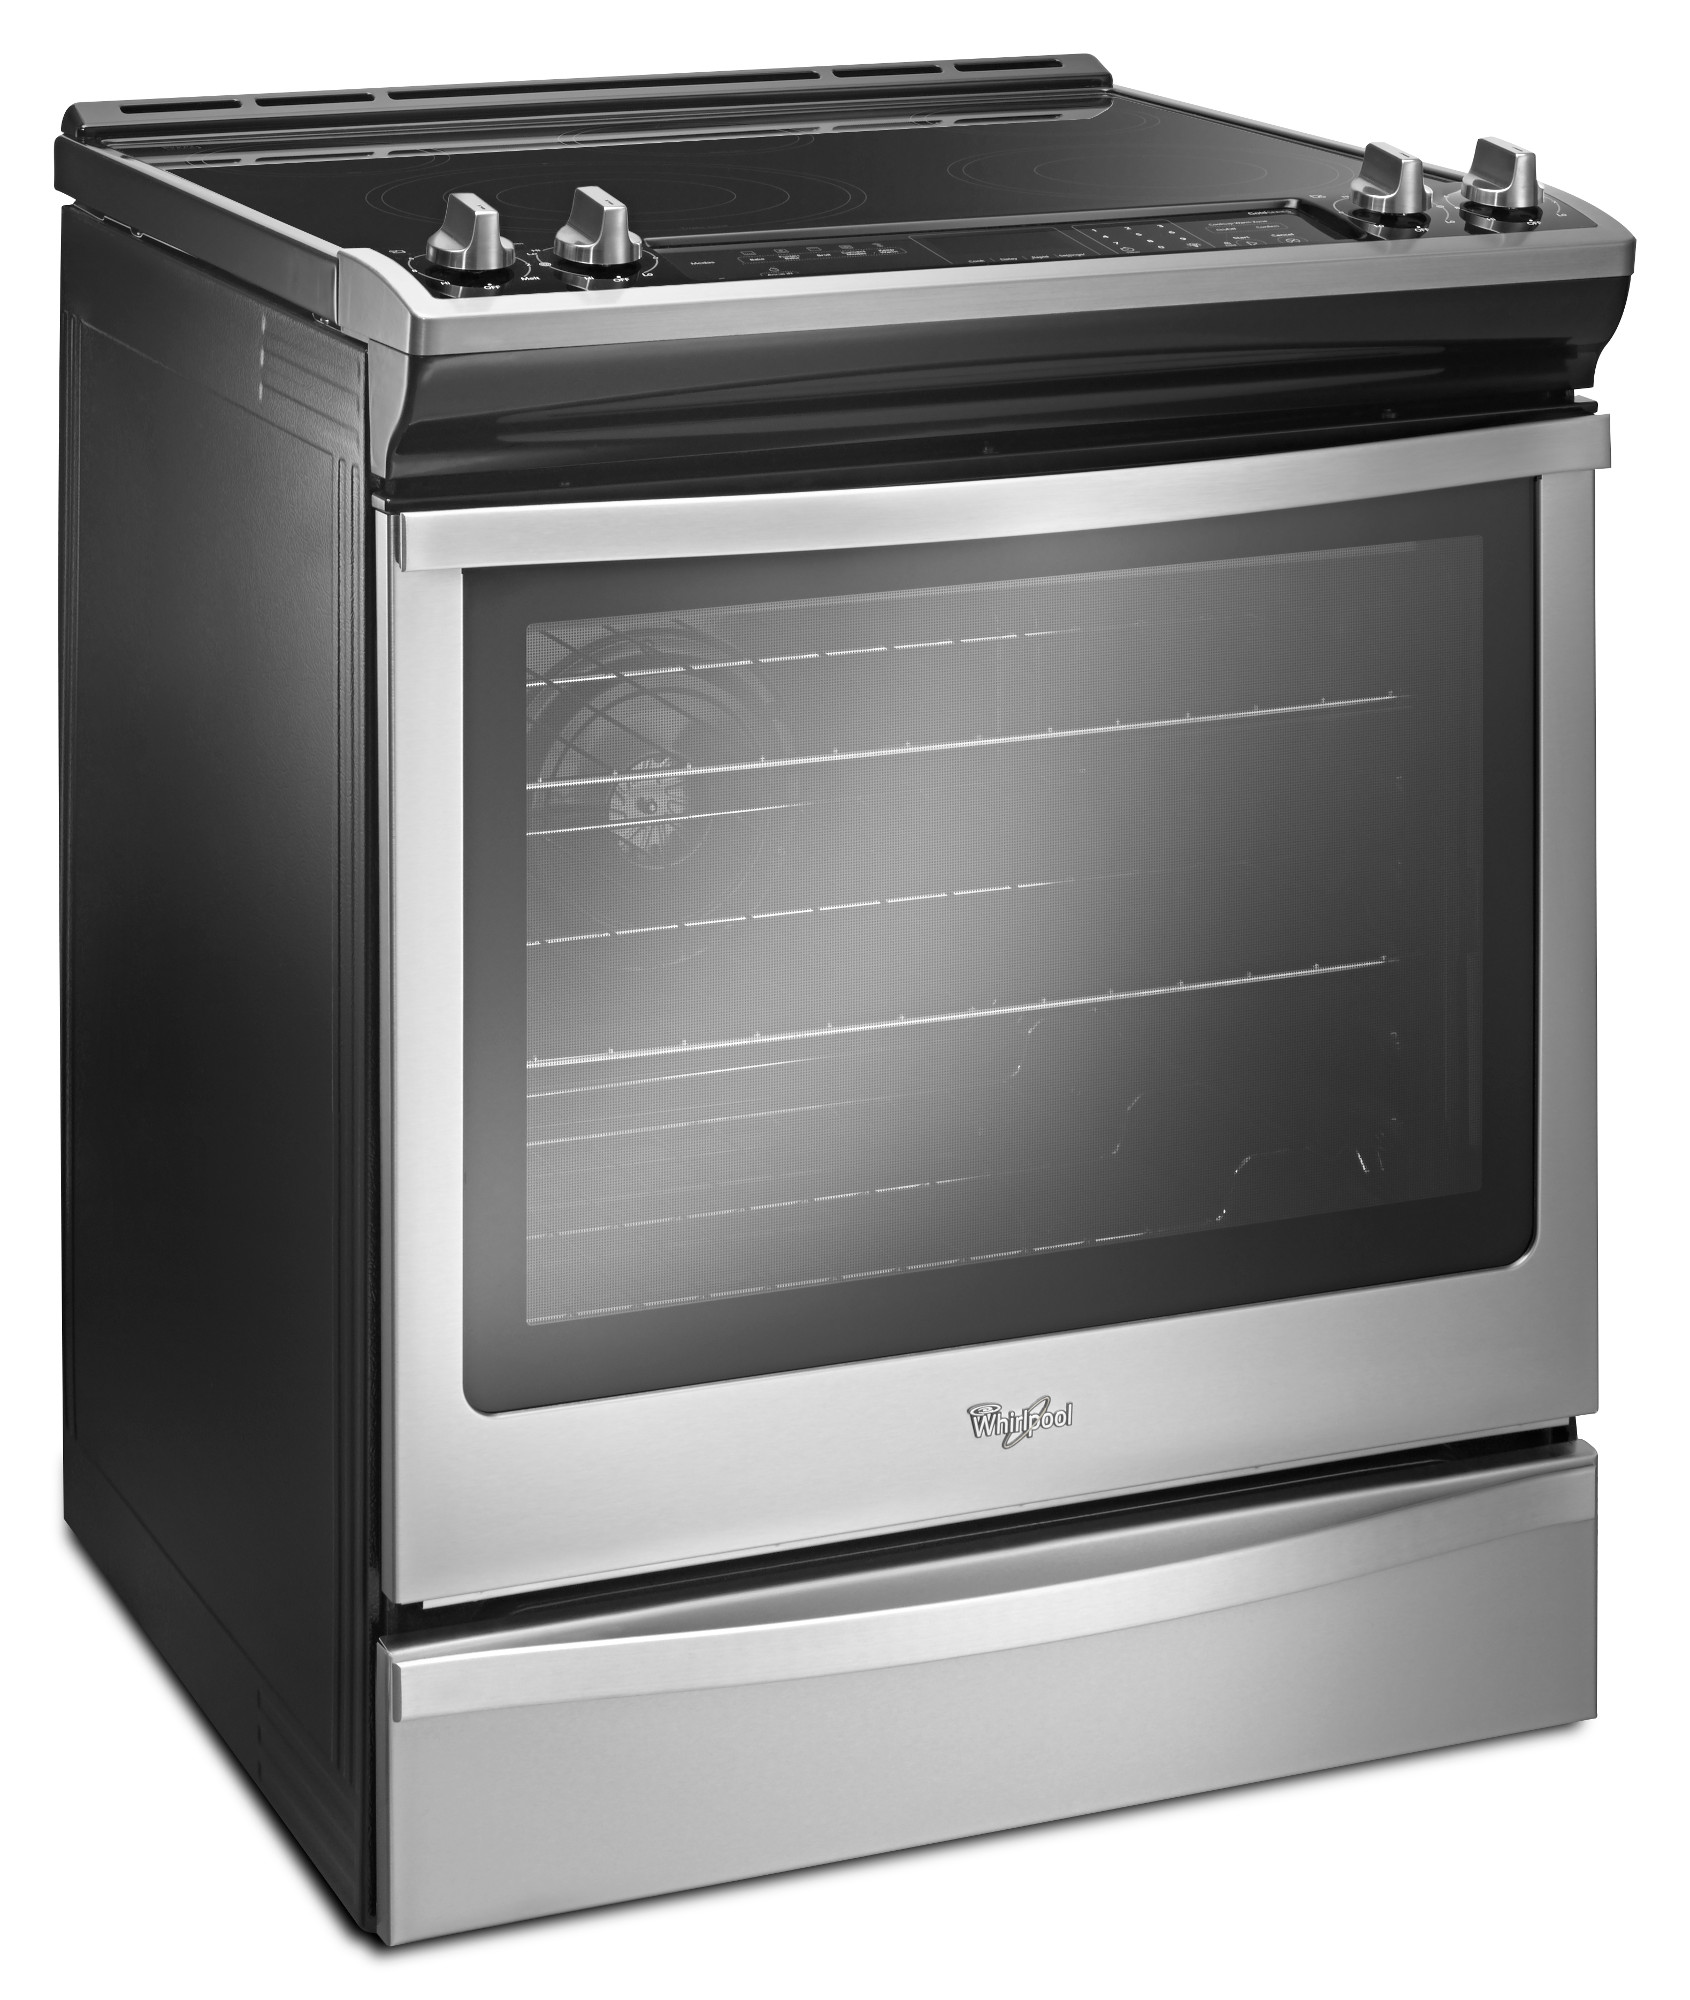 Whirlpool WEE745H0FS 6.4 cu. ft. Front-Control Electric Range with True Convection - Stainless Steel